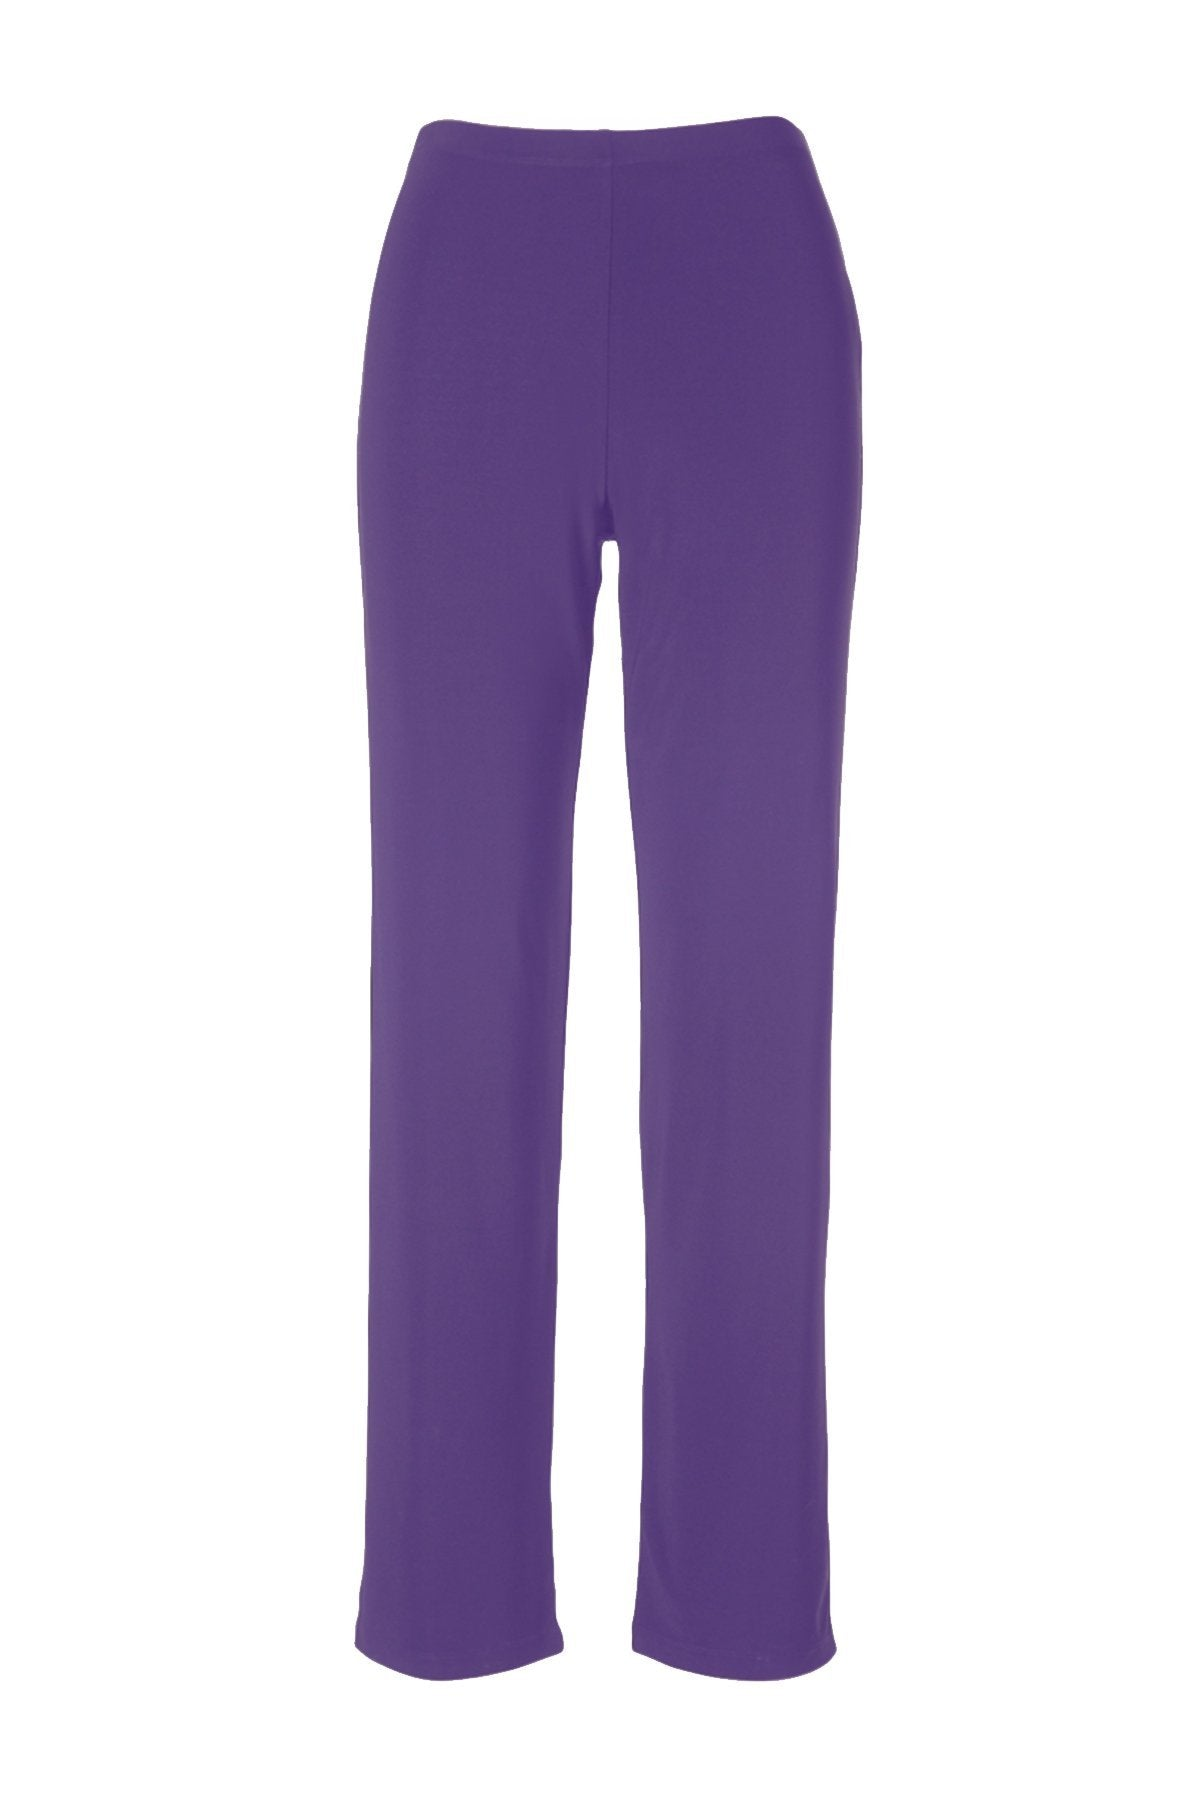 Basic Pants - Women's Clothing -ROSARINI